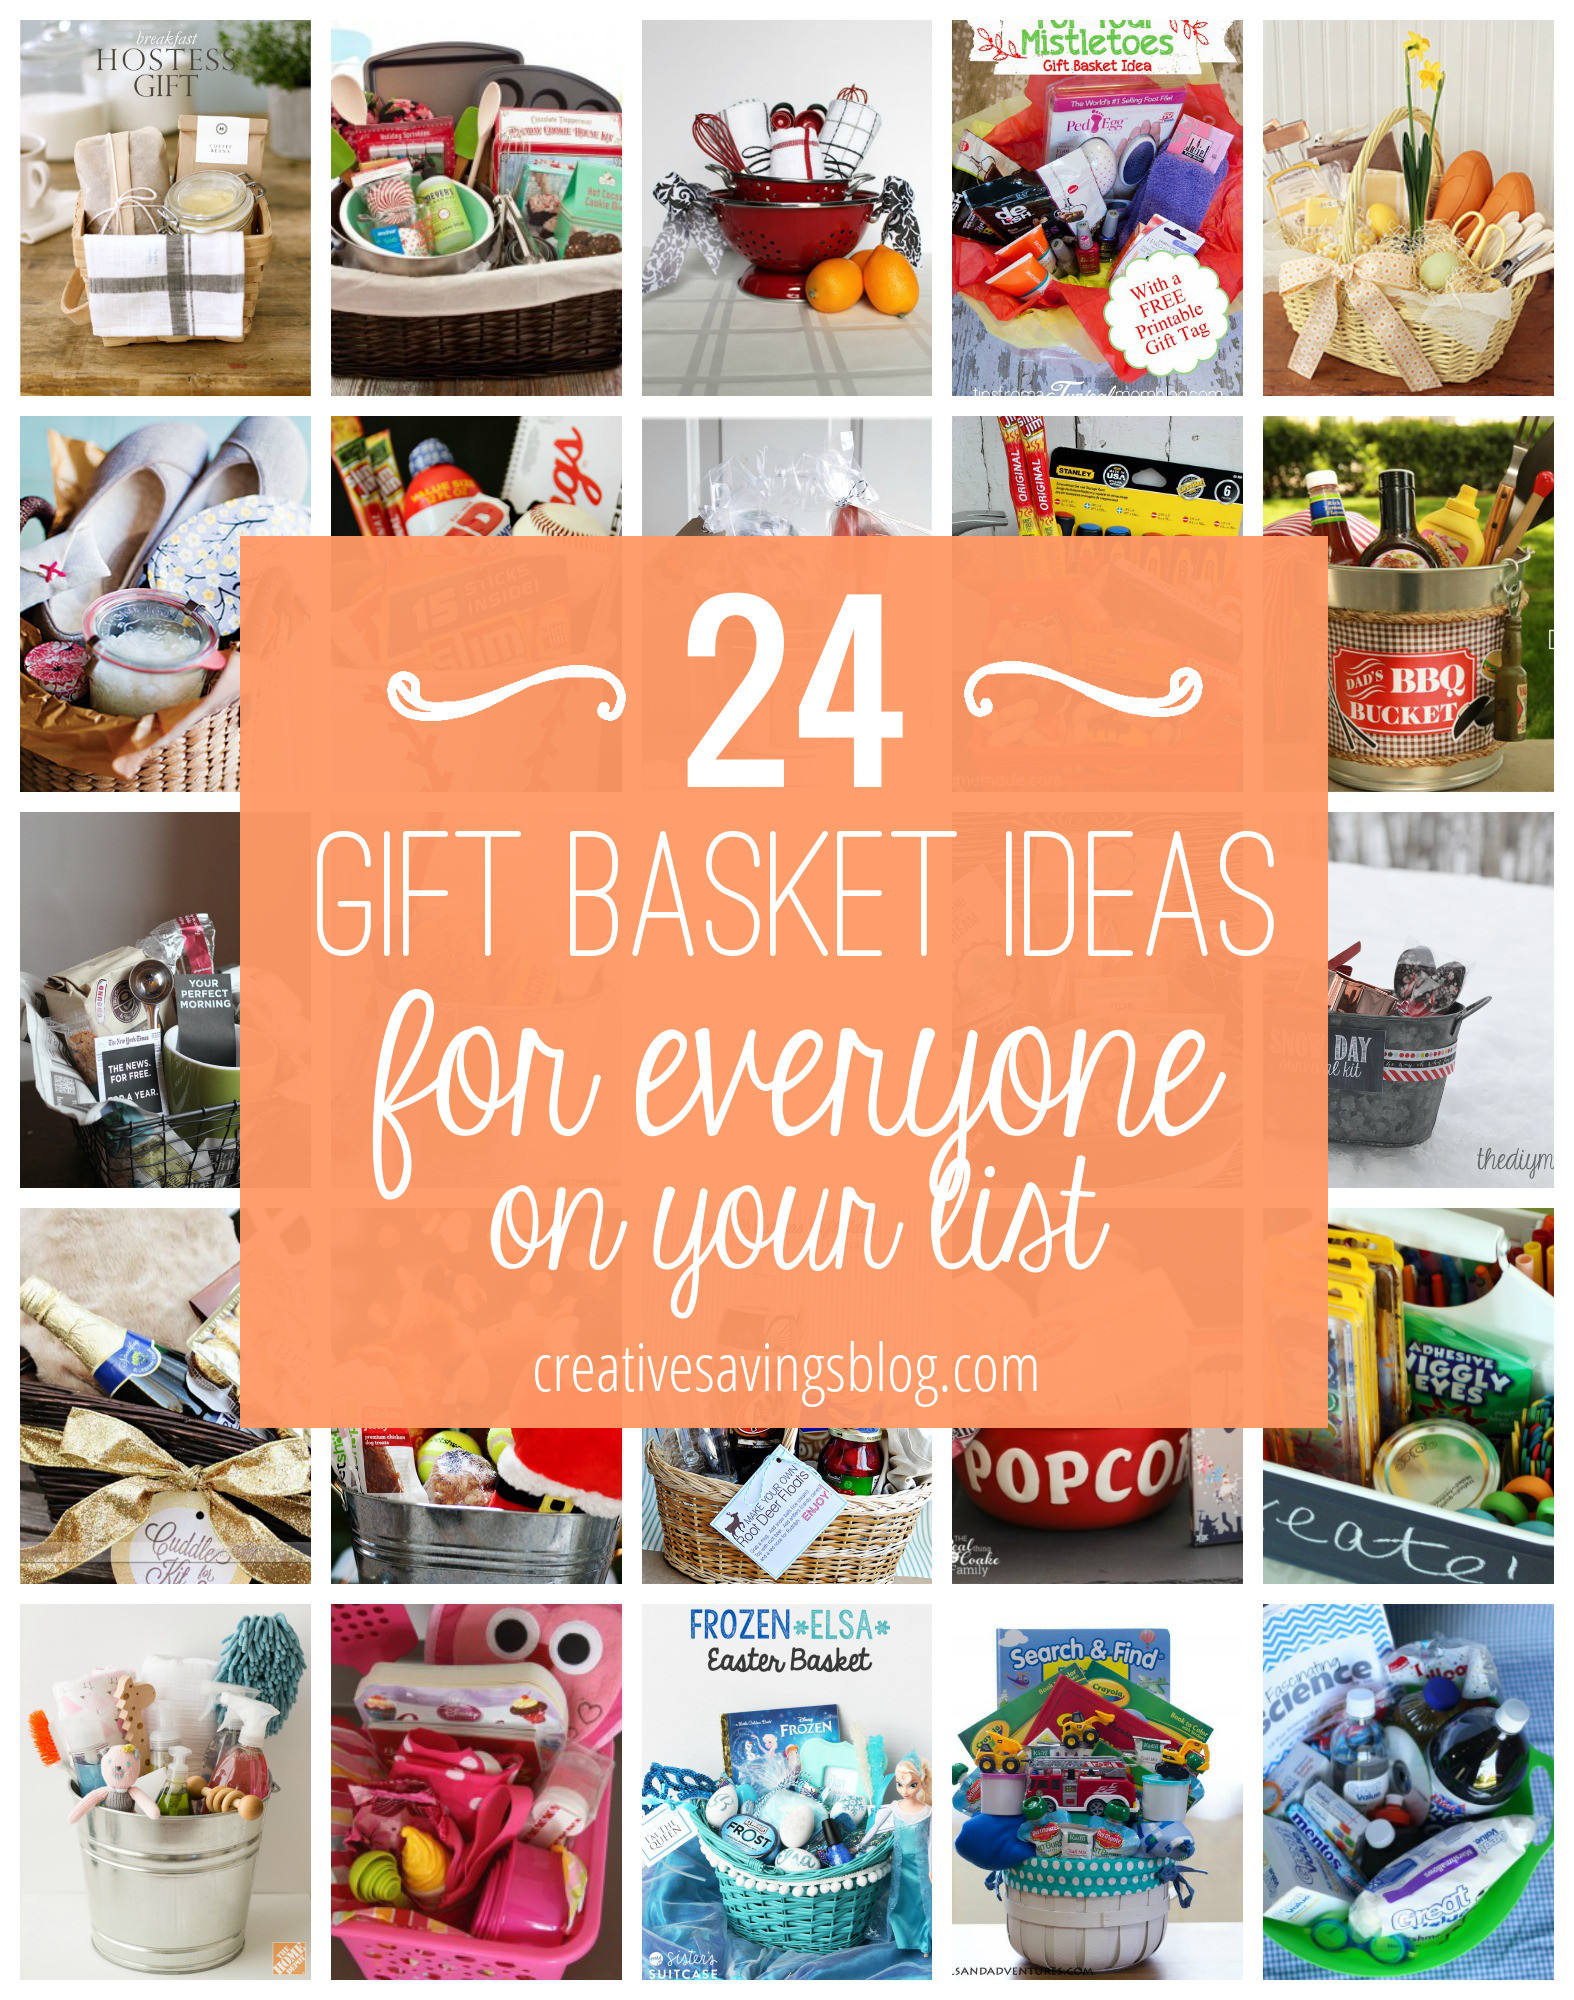 Christmas Gift Theme Ideas  DIY Gift Basket Ideas for Everyone on Your List